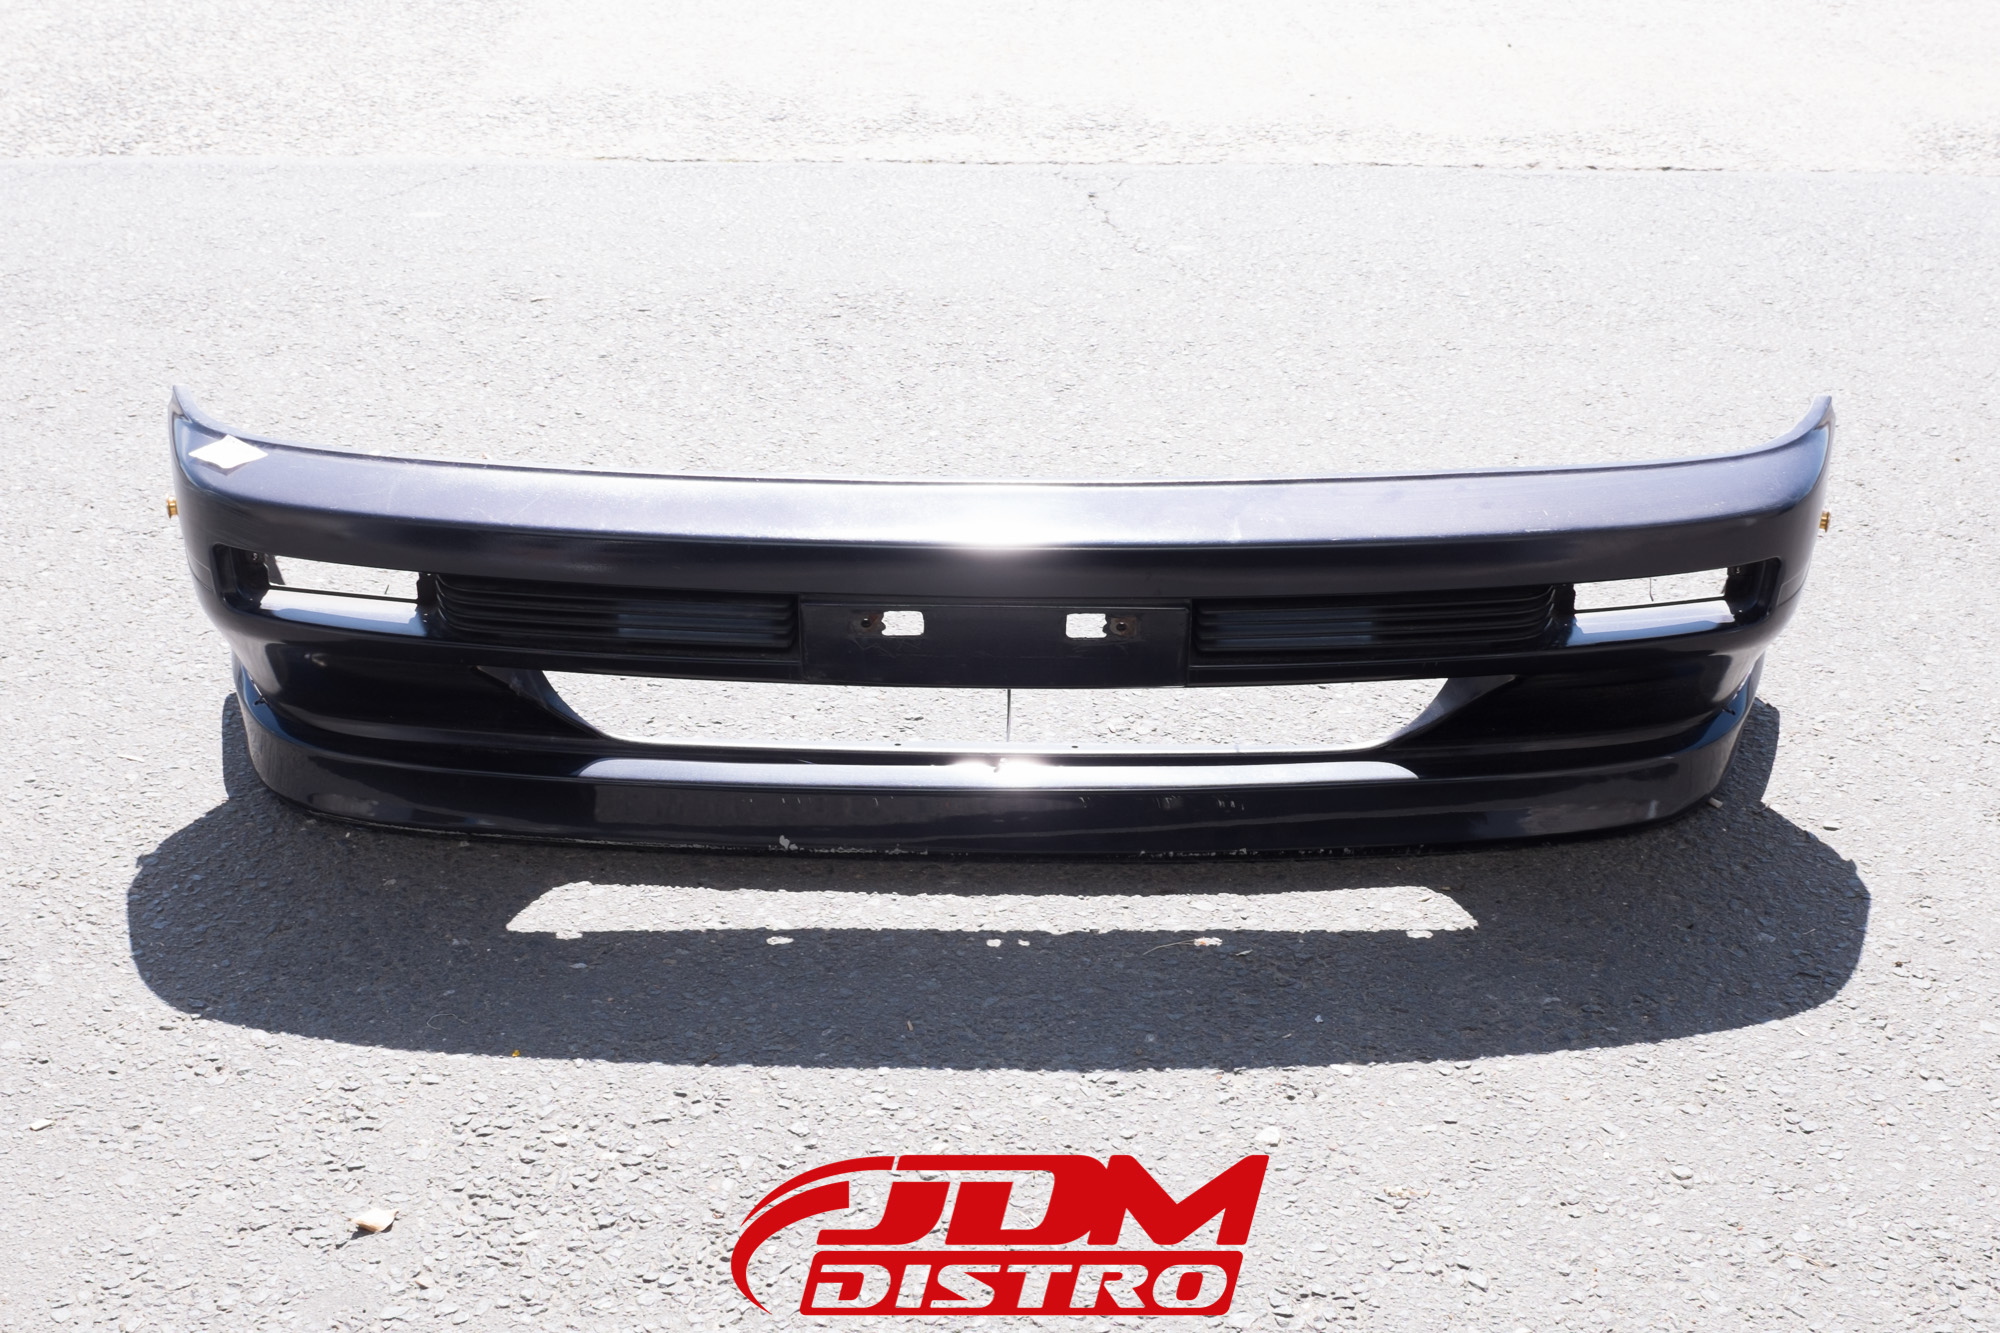 NISSAN SILVIA S13 FRONT BUMPER WITH CA FRONT LIP